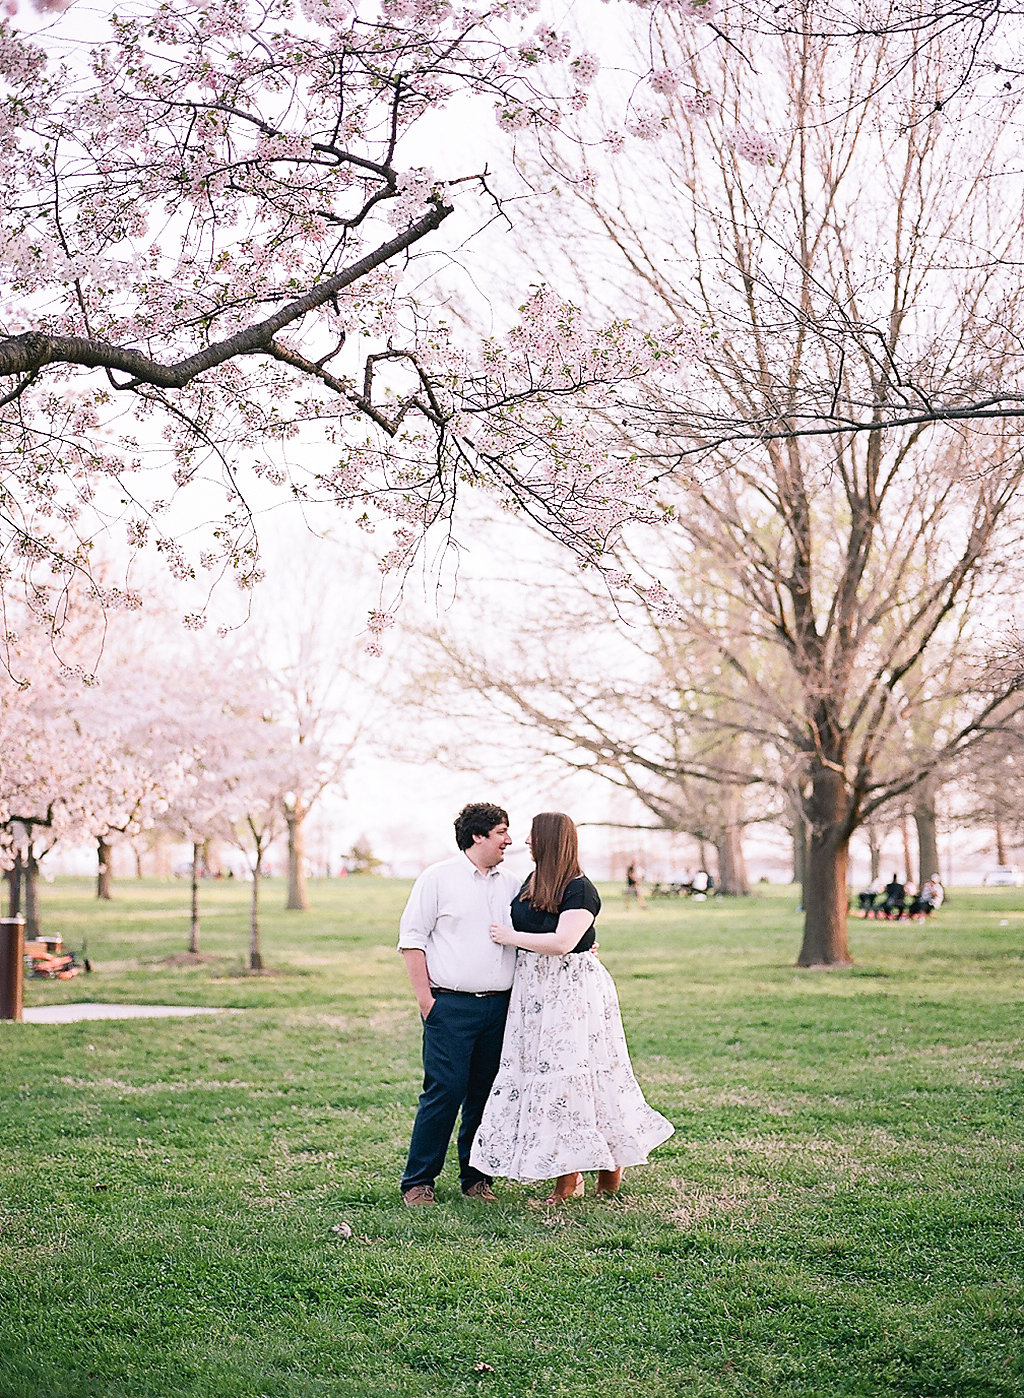 Cherry Blossom Engagement Photos | Andrea Rodway Photography